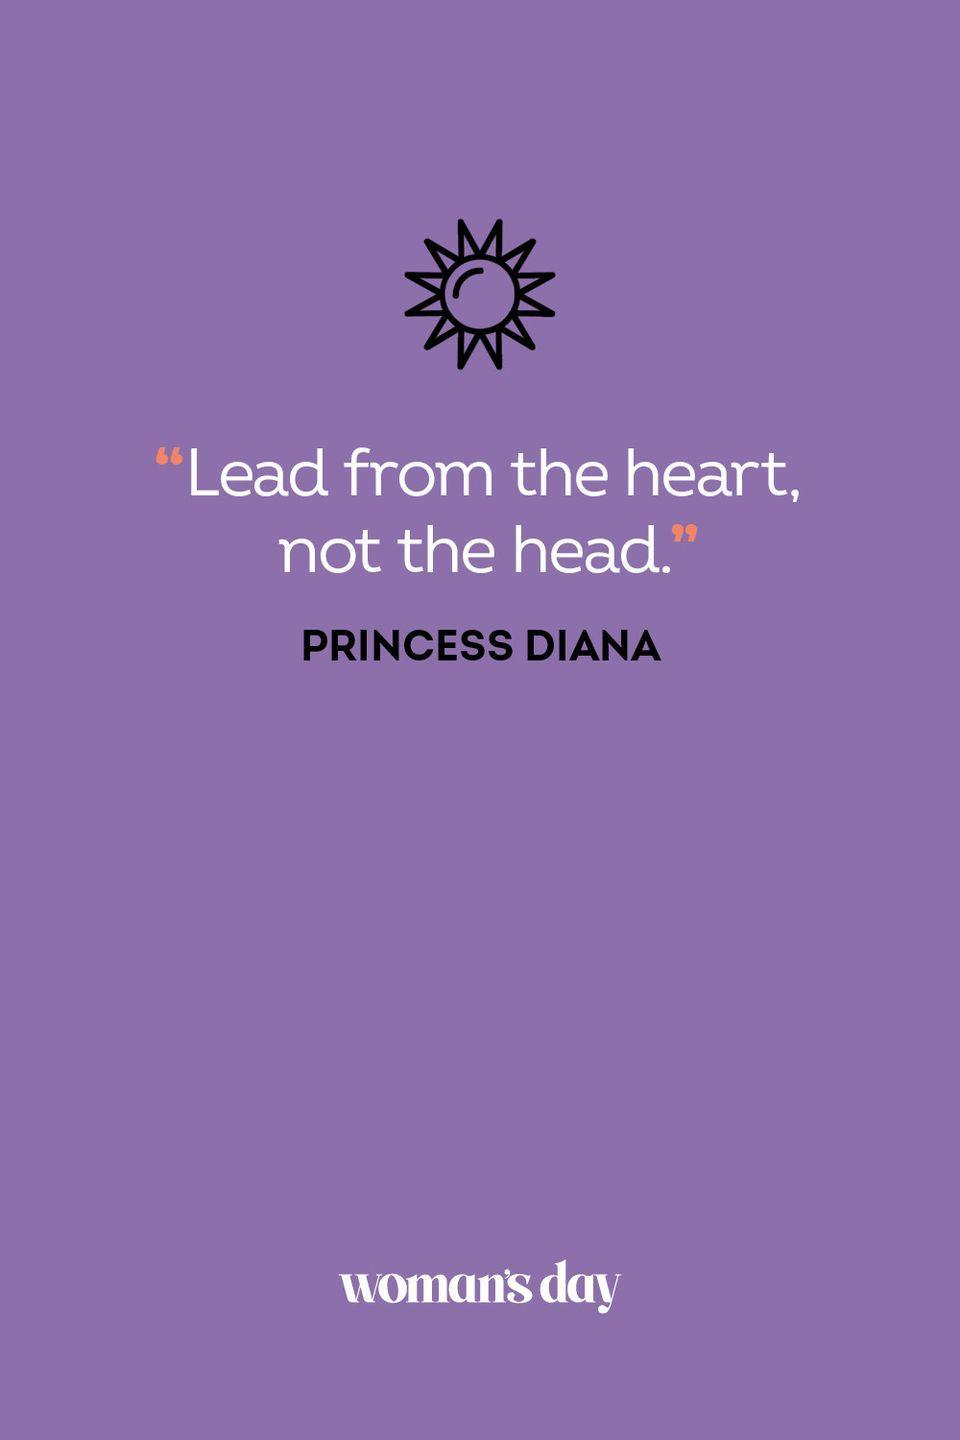 <p>Lead from the heart, not the head.</p>